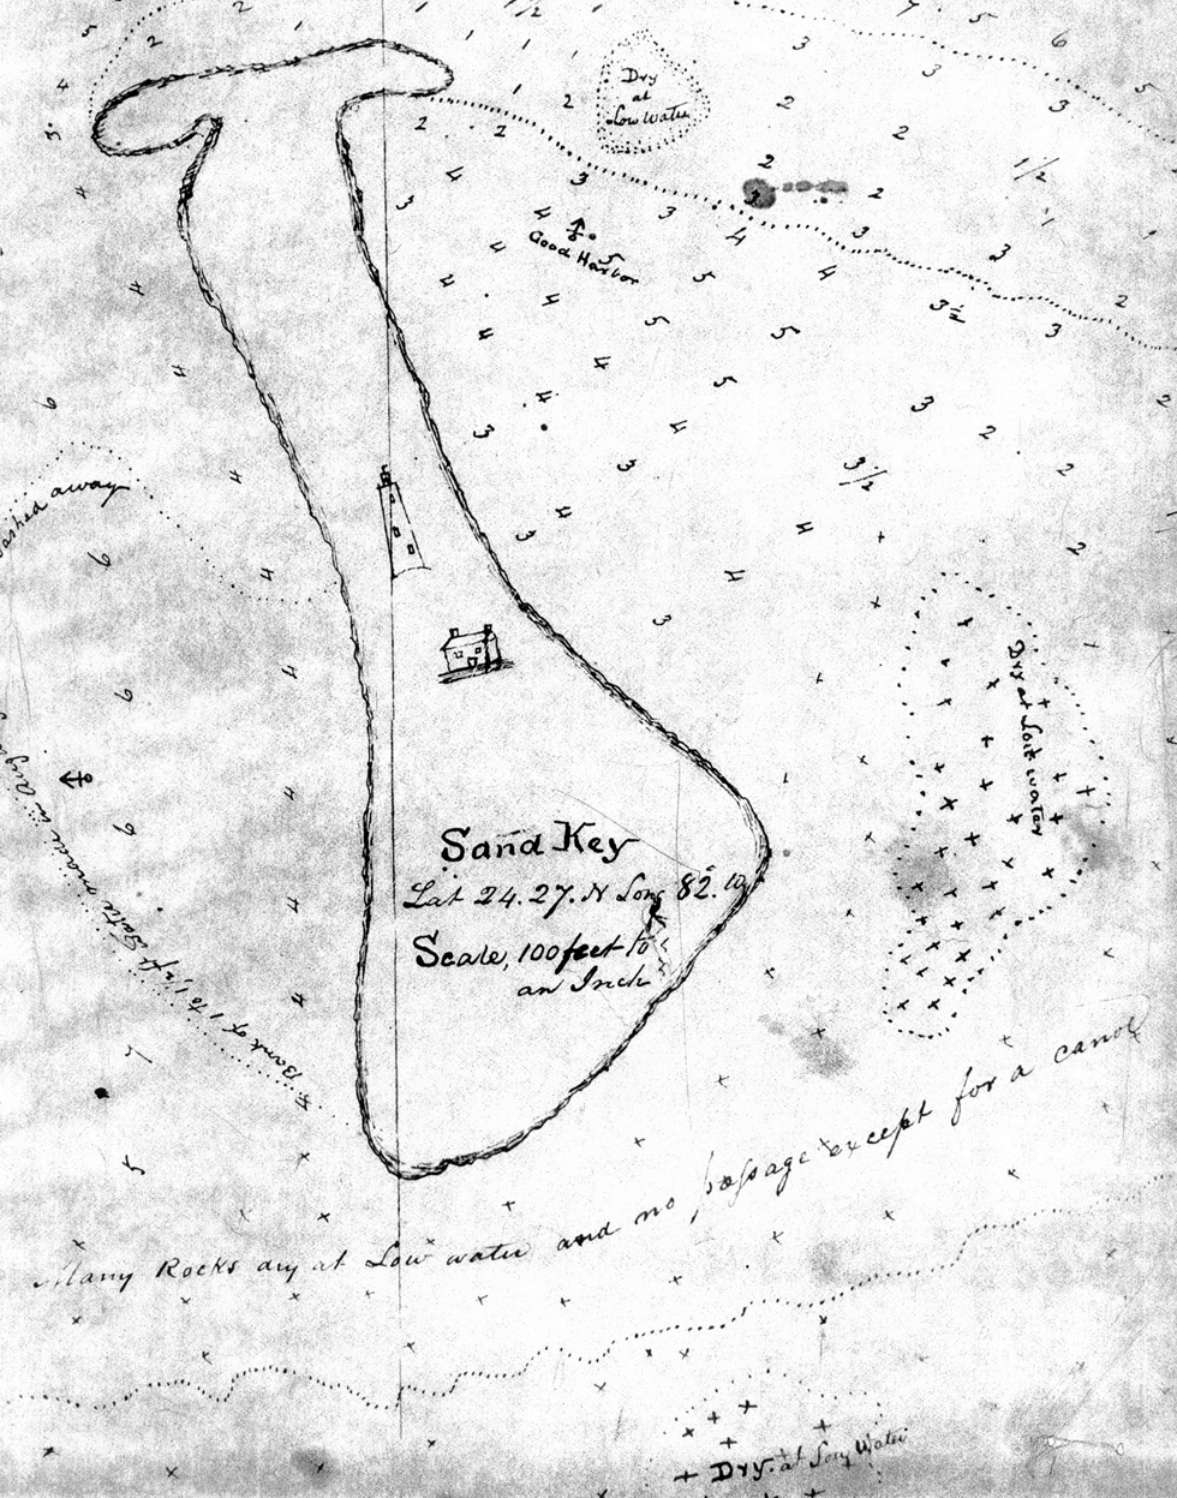 File:Sand Key, Florida map pre-1846.png - Wikipedia on 9gag map, language map, the republic of molossia map, freedom house map, encarta map, fusion tables map, global security map, streetview map, tanzania tourism map, 1964 electoral college map, hopkins medicine map, it network map, pirate bay map, bible places map, kansas cemeteries map, spaceport america map, hispanic latino map, the principality of sealand map, smithsonian institute map, icao airport codes map,